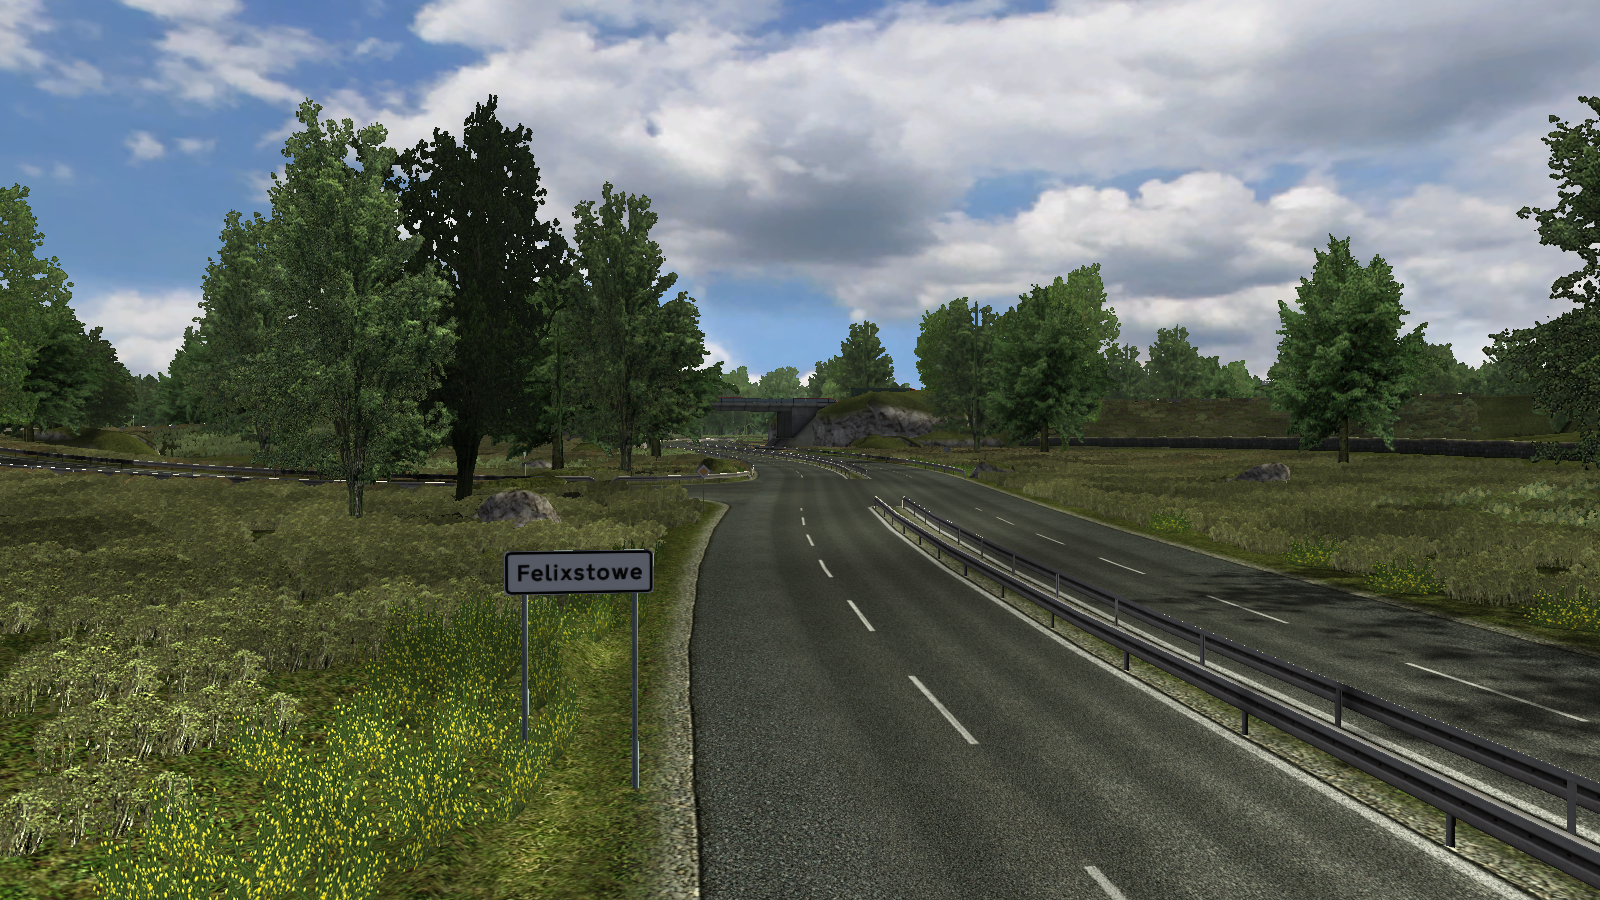 Felixstowe/UK Truck Simulator